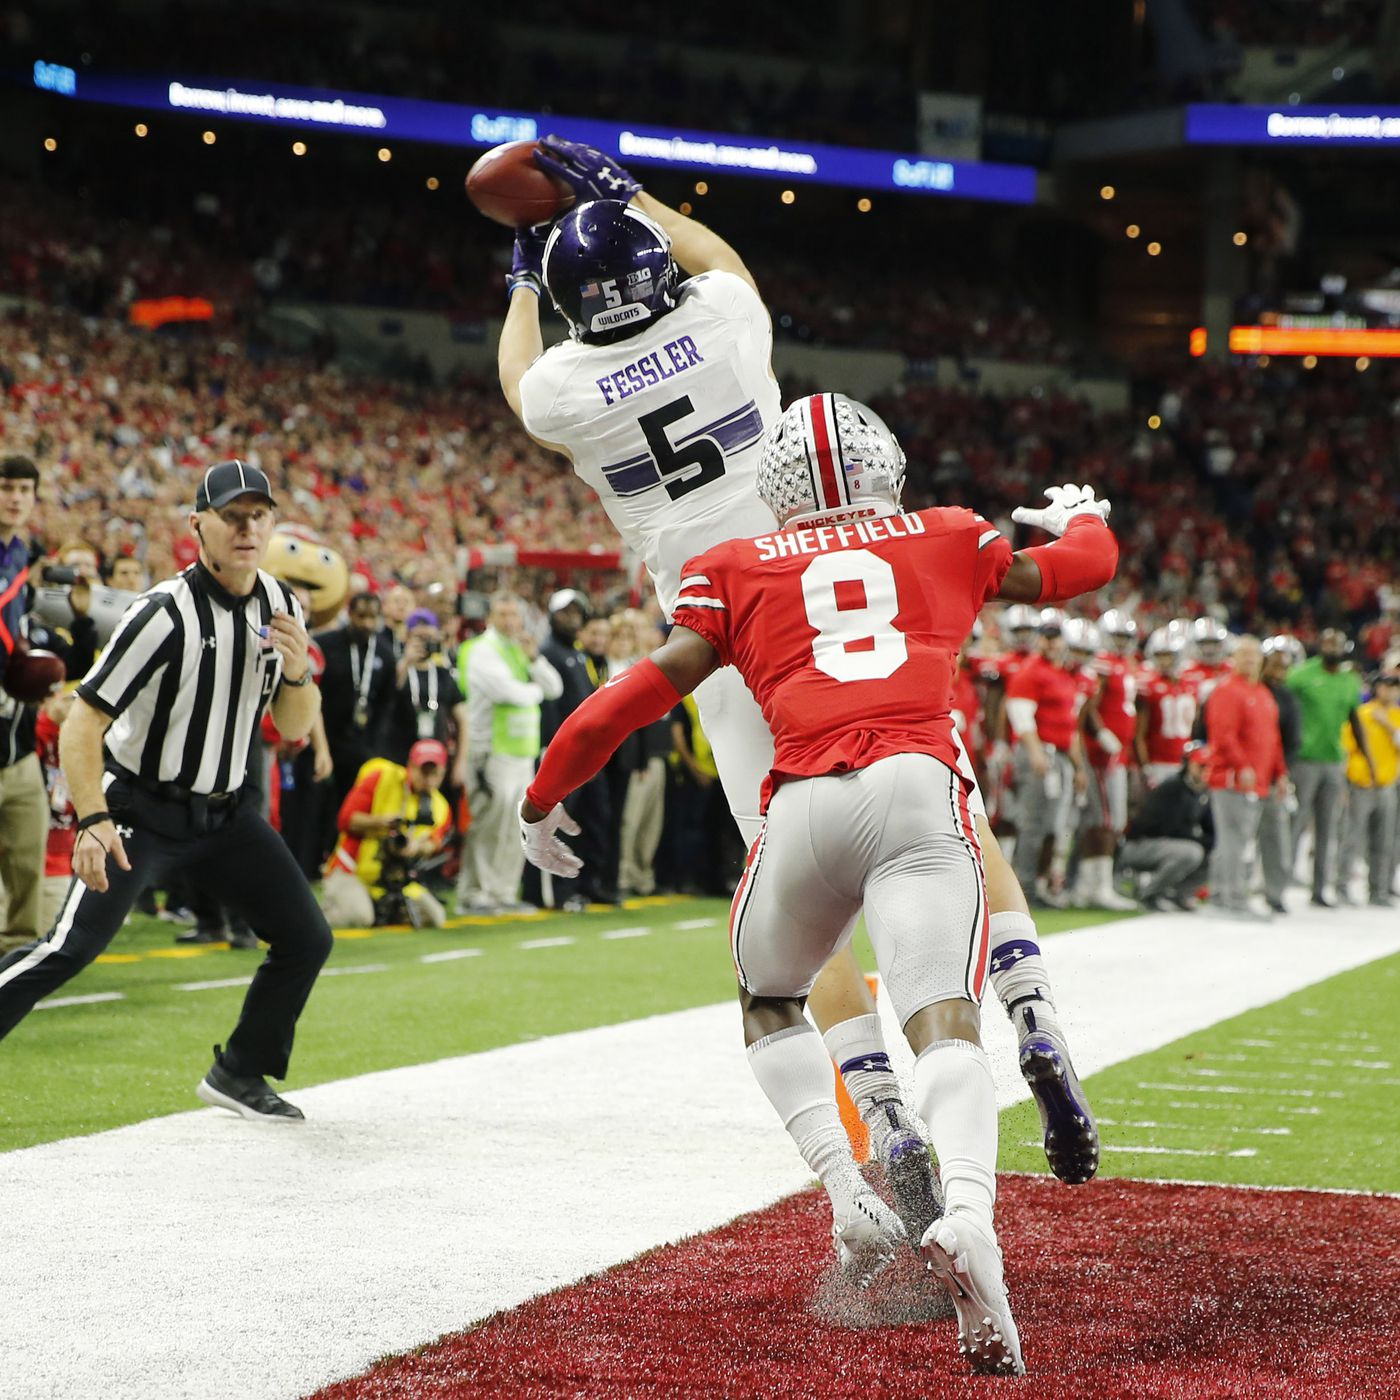 e980b9e2c13 Ohio State cornerback Kendall Sheffield appears to be headed for NFL Draft